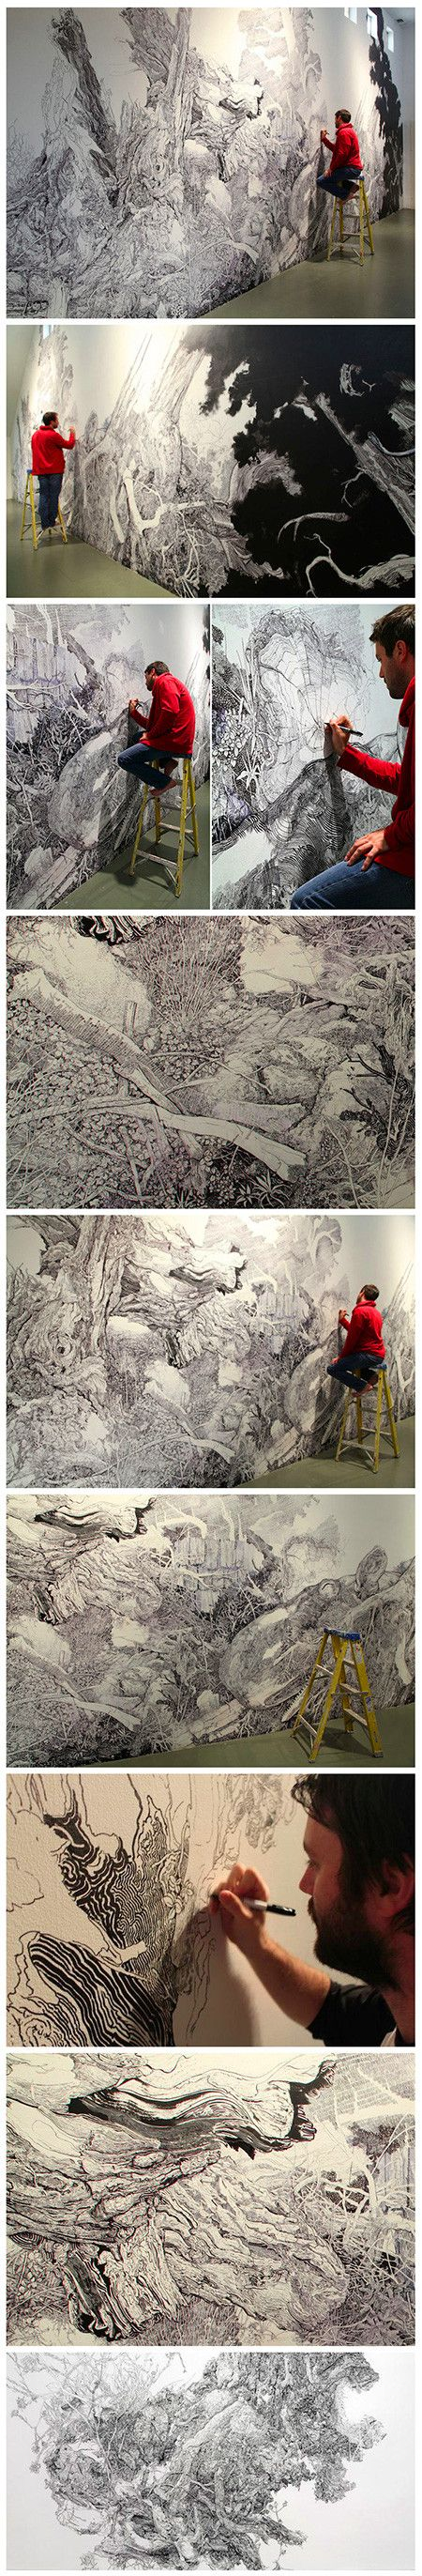 Using just a Sharpie, the artist started drawing with the image of a fallen oak tree in his mind, but his imagination quickly took off from there as he painstakingly drew heaps of rotting wood, fallen branches, knots and fissures, wild grass and plants, bushy leaves, and even a massive whale. The amount of detail in the mural is breathtaking, as each closer look reveals another aspect of the piece.